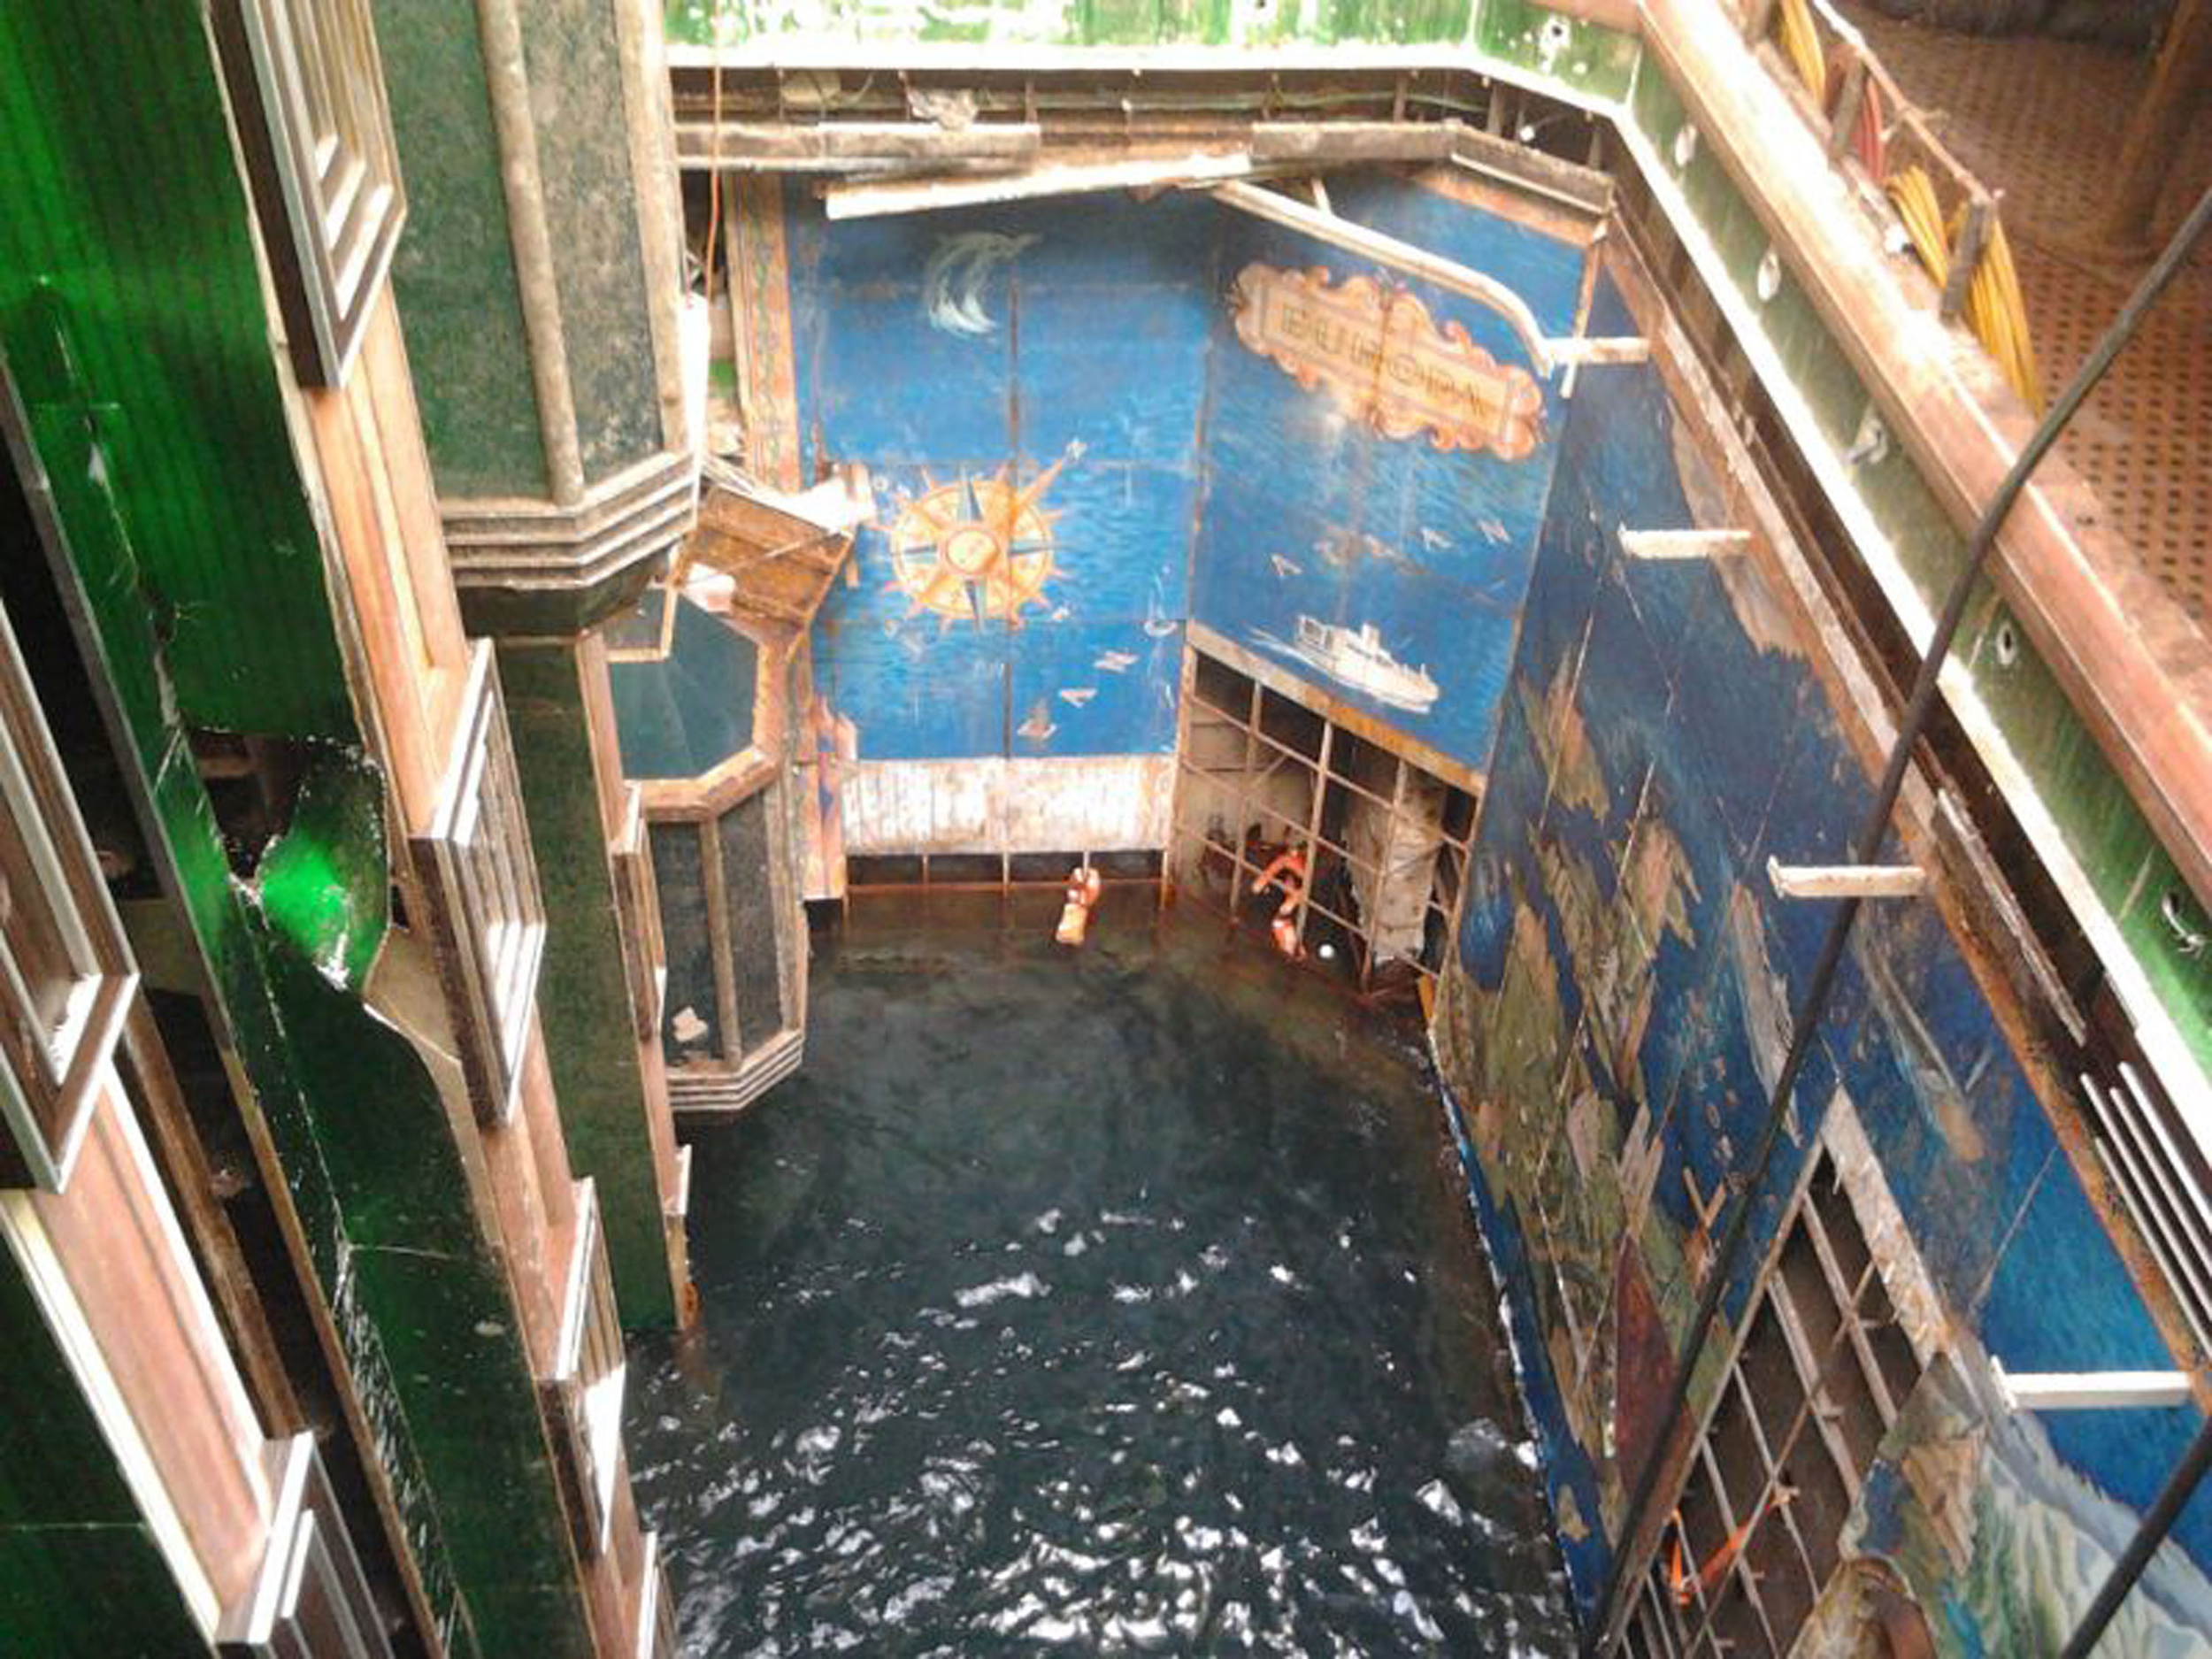 Frozen in time inside the sunken costa concordia nbc news for Inside pictures